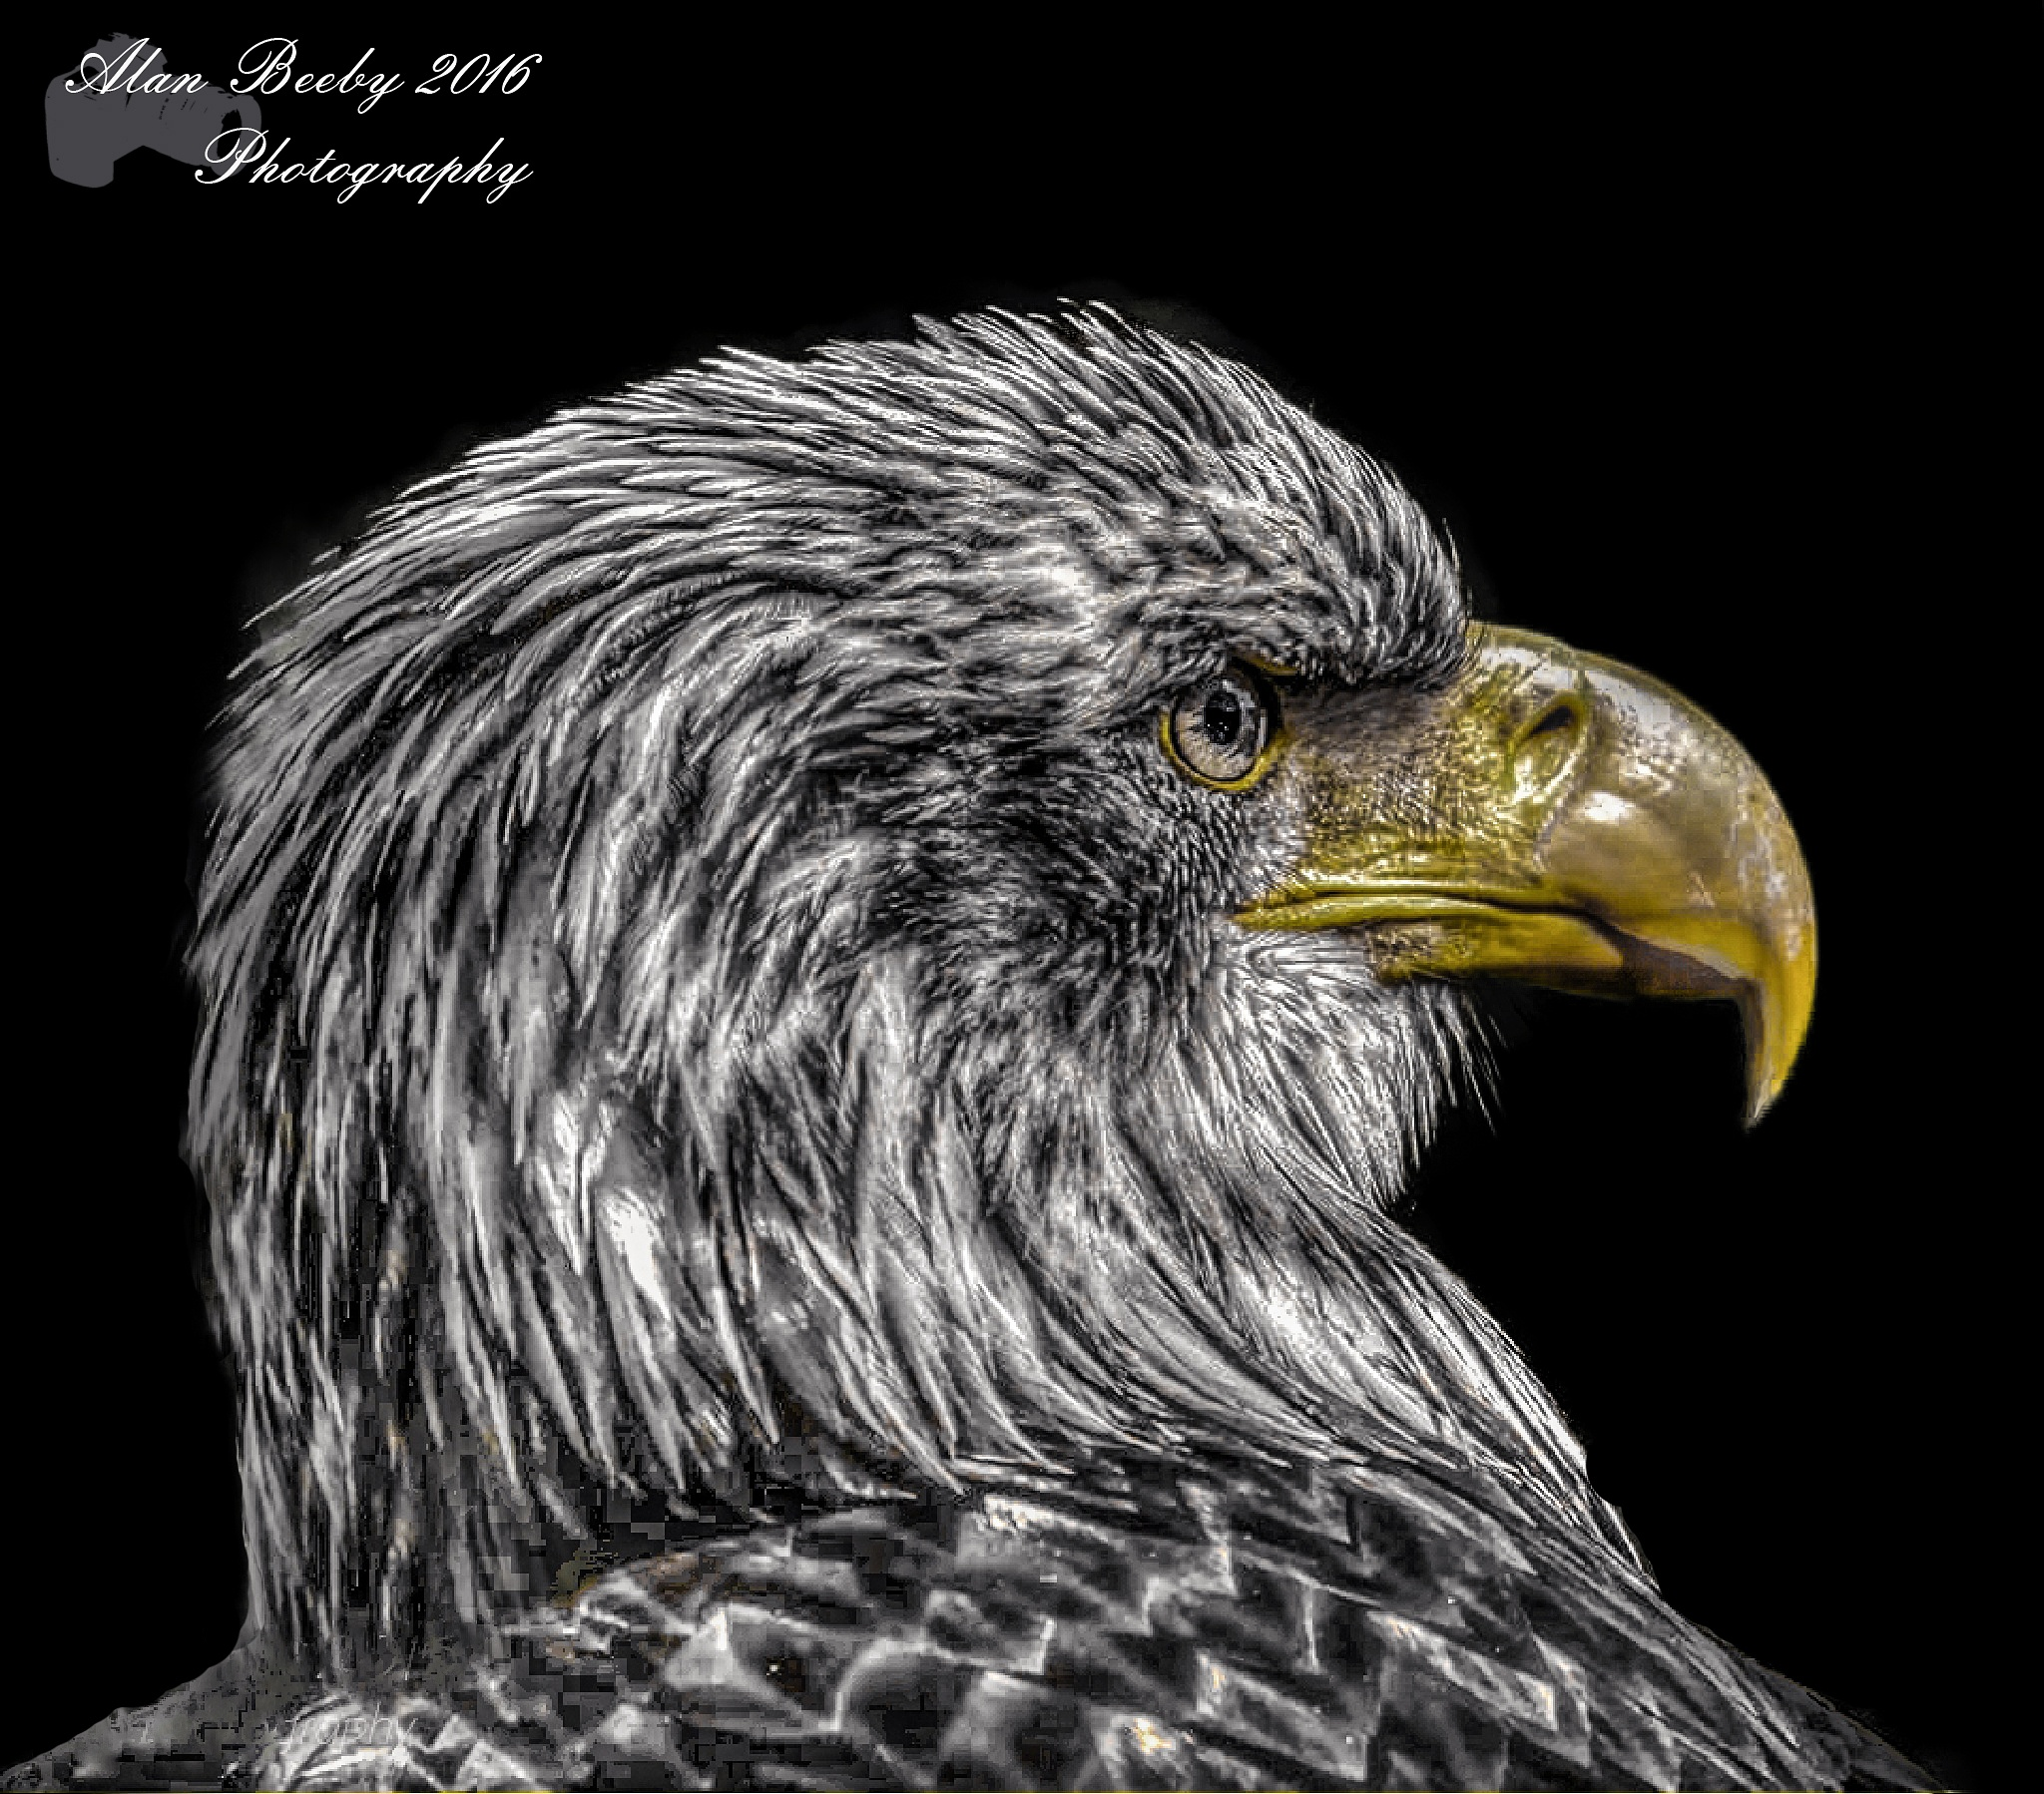 sea Eagle/zee arend by Alan beeby